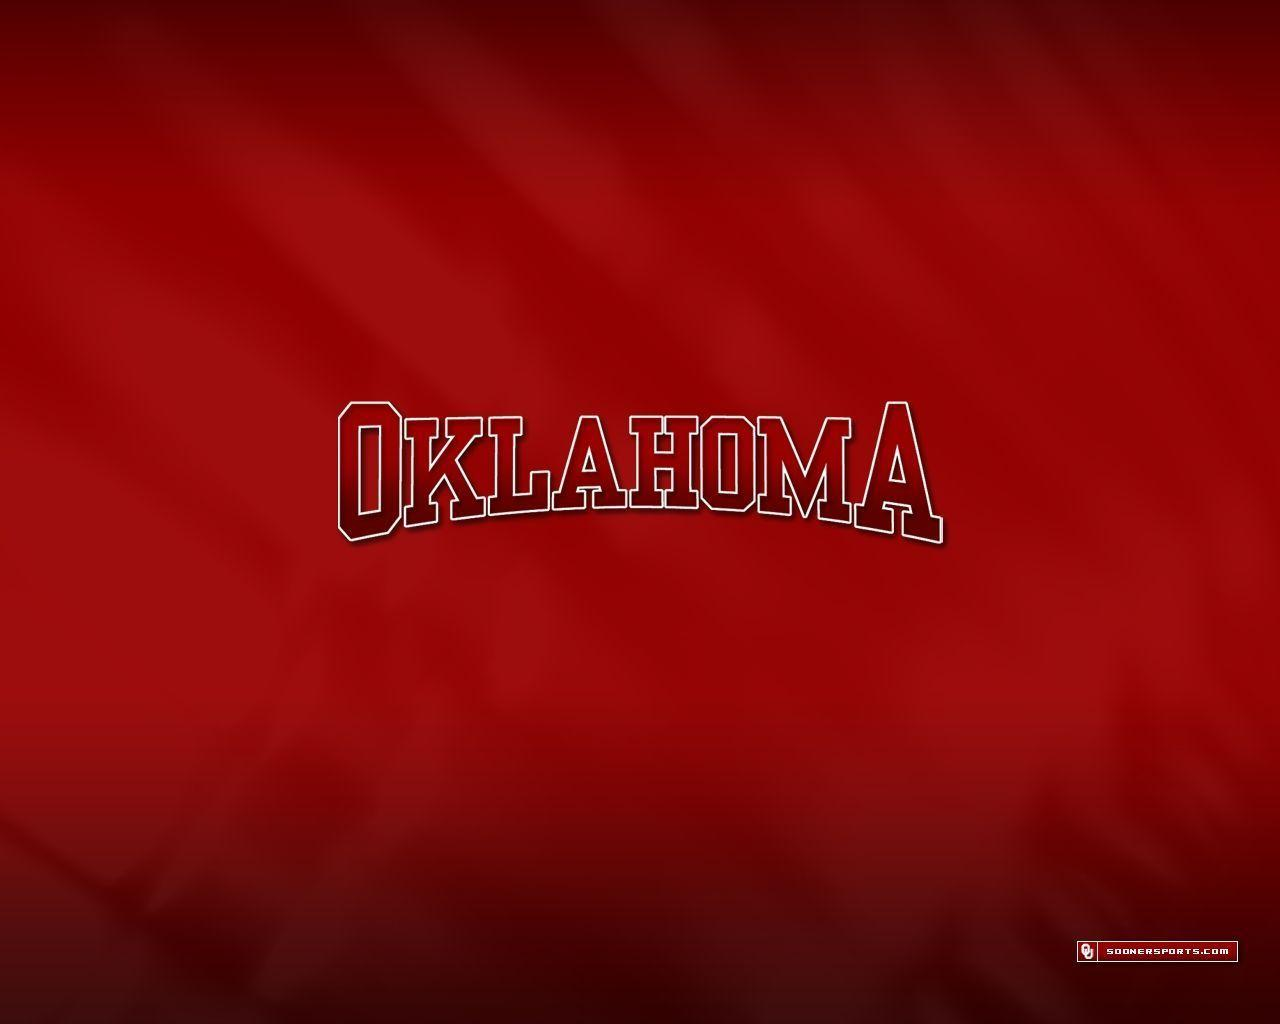 ou sooners wallpaper for laptop - photo #23